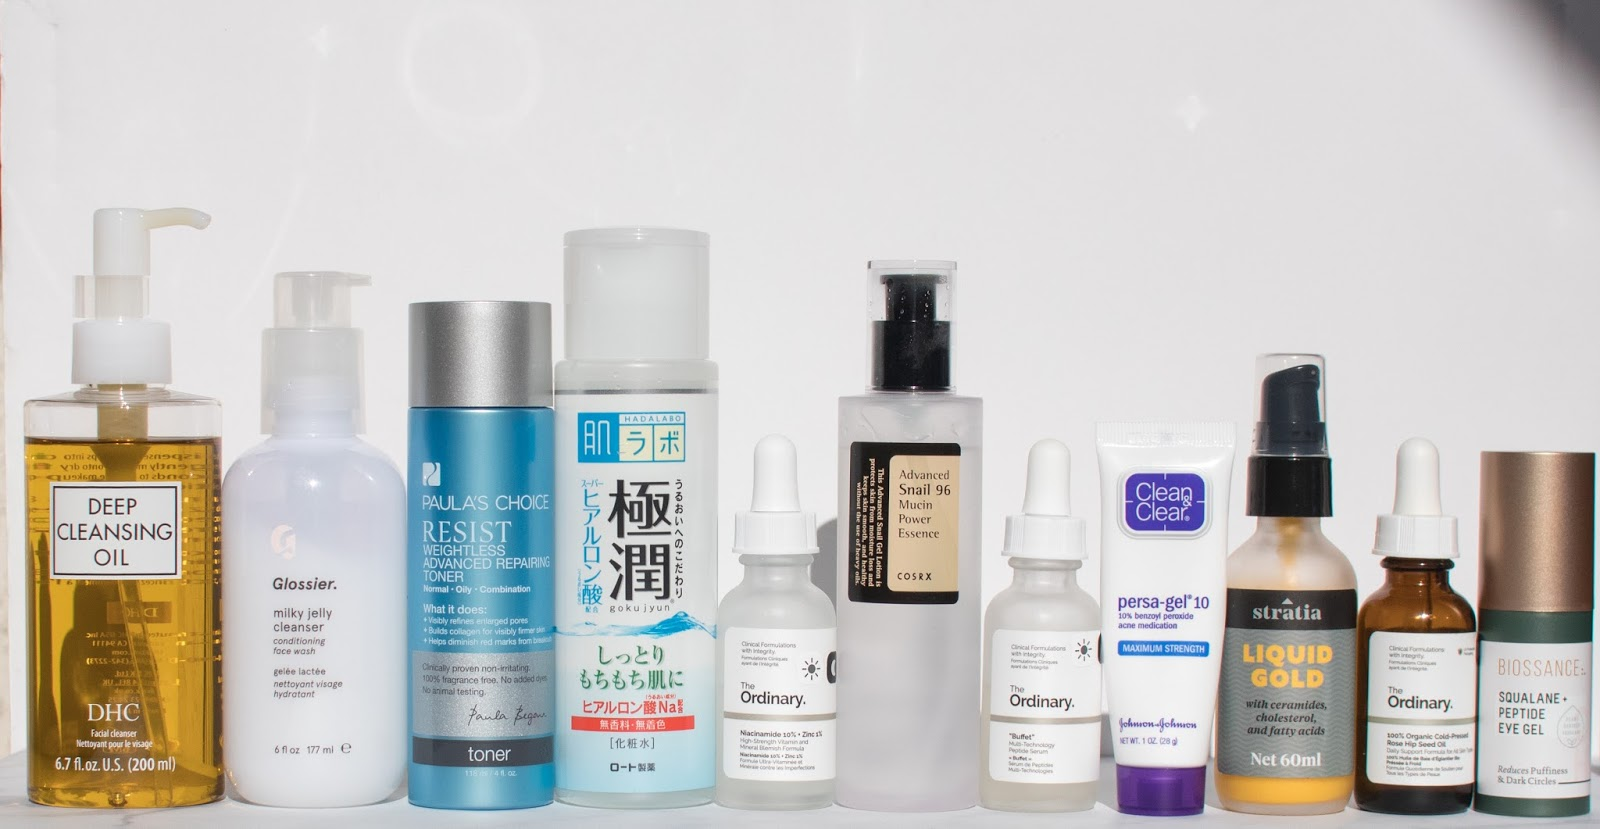 Nighttime Skincare Routine for Oily Acne Prone Skin